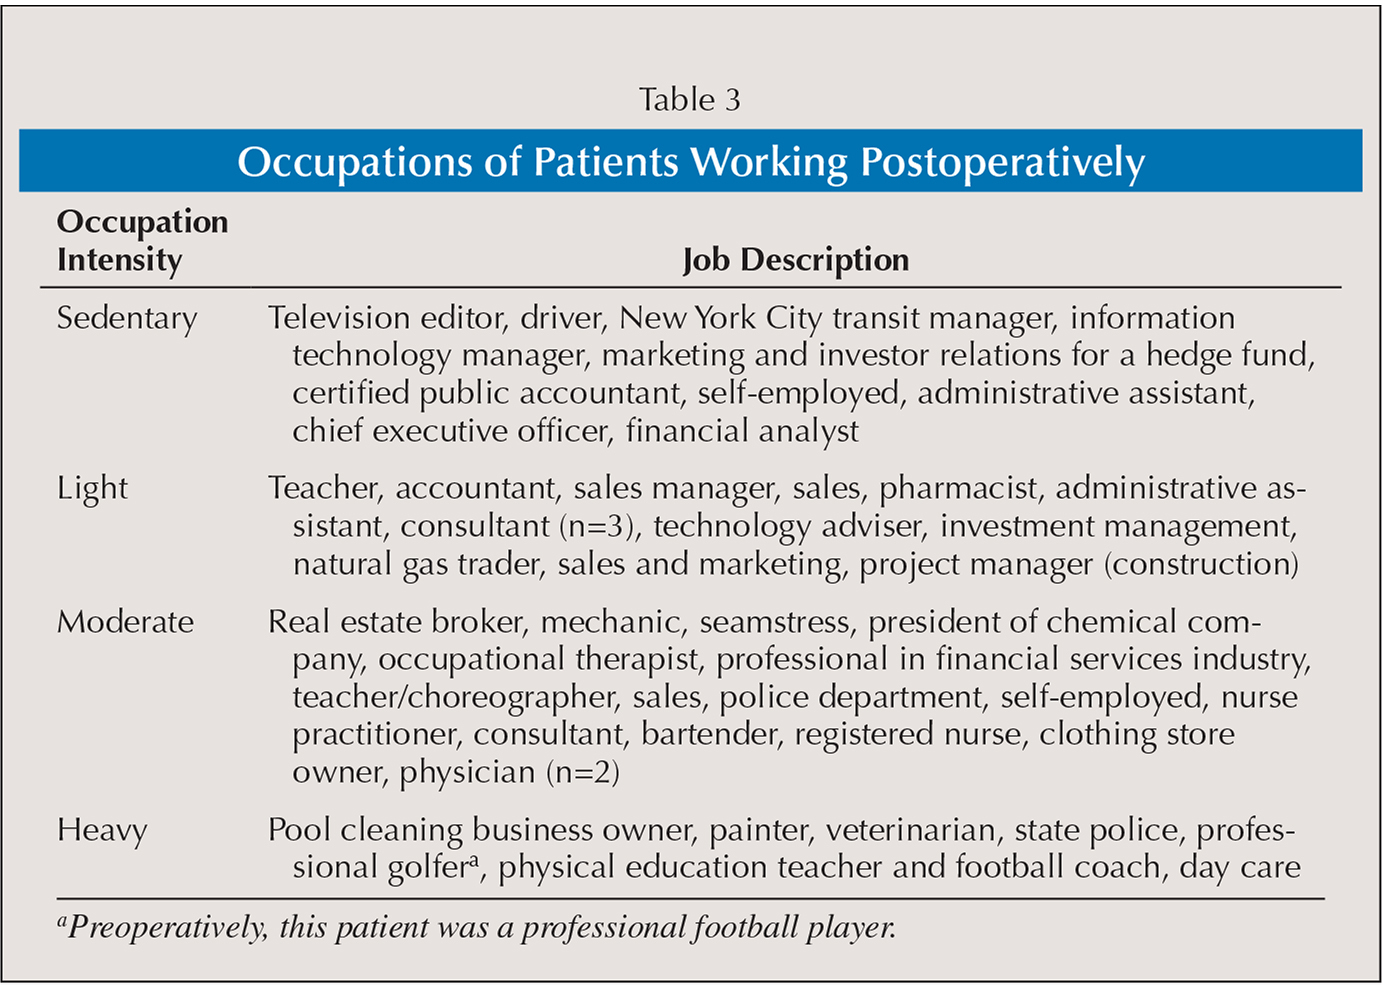 Occupations of Patients Working Postoperatively